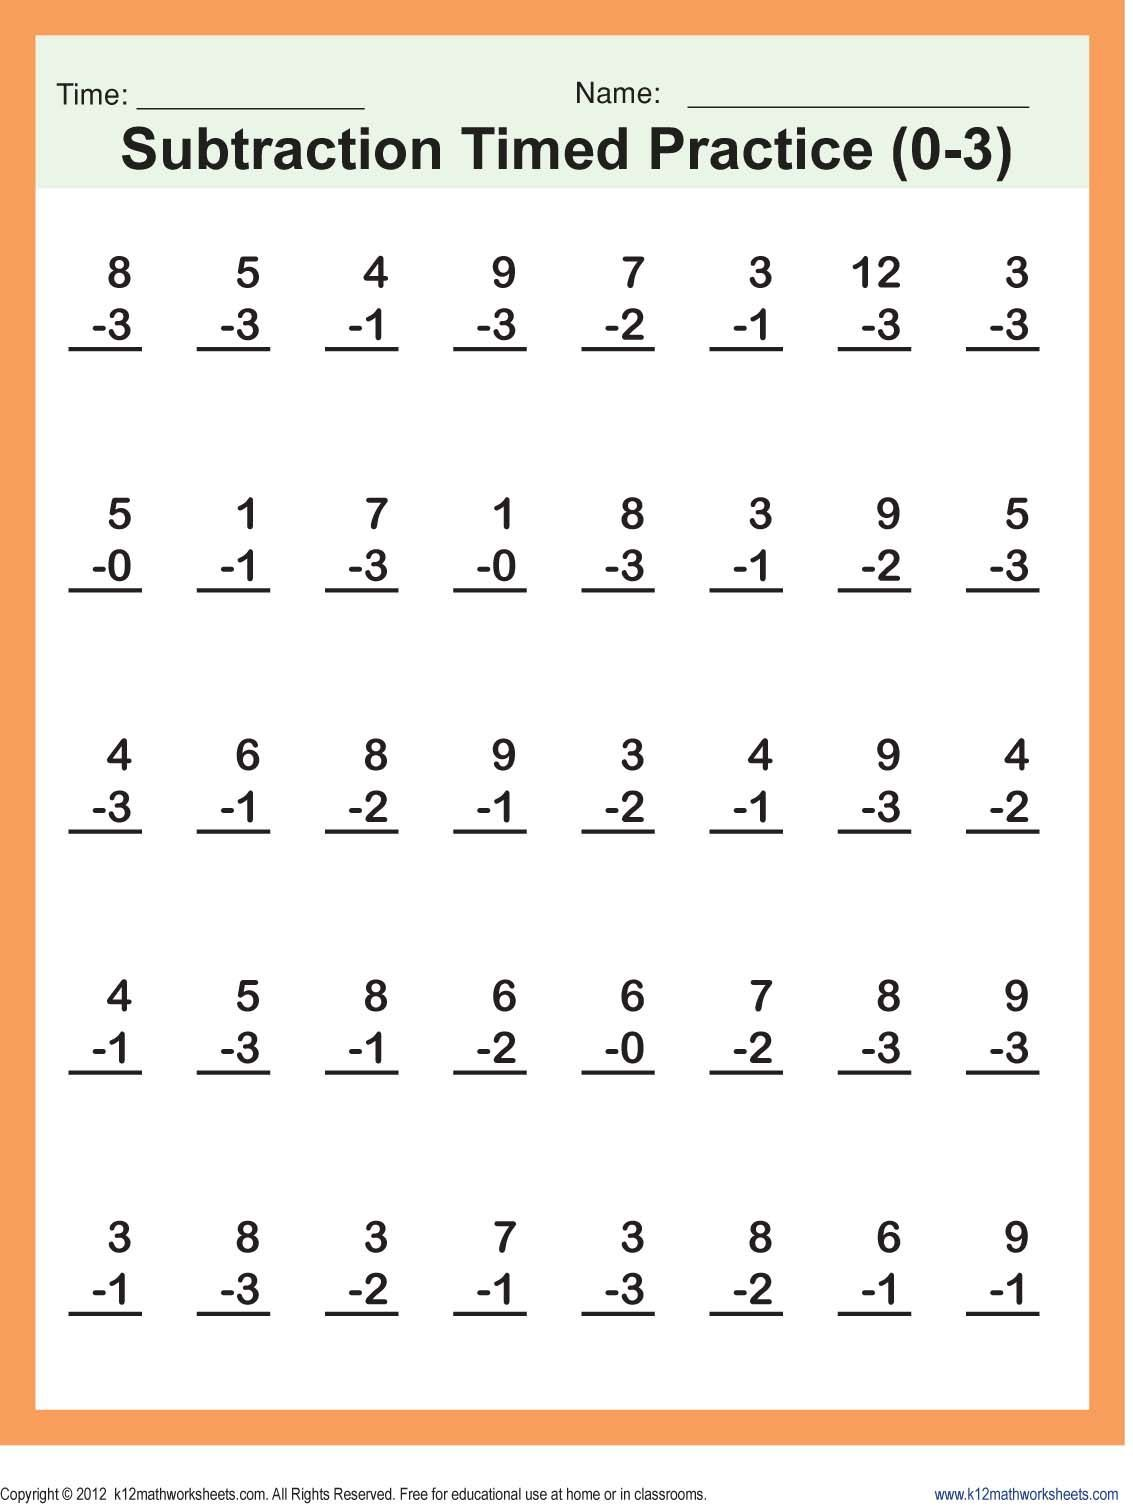 1st Grade Subtraction Worksheets Worksheets Are An Important Portion Of Gaining In 2021 Money Worksheets 1st Grade Math Worksheets Kindergarten Worksheets Printable [ 1508 x 1133 Pixel ]